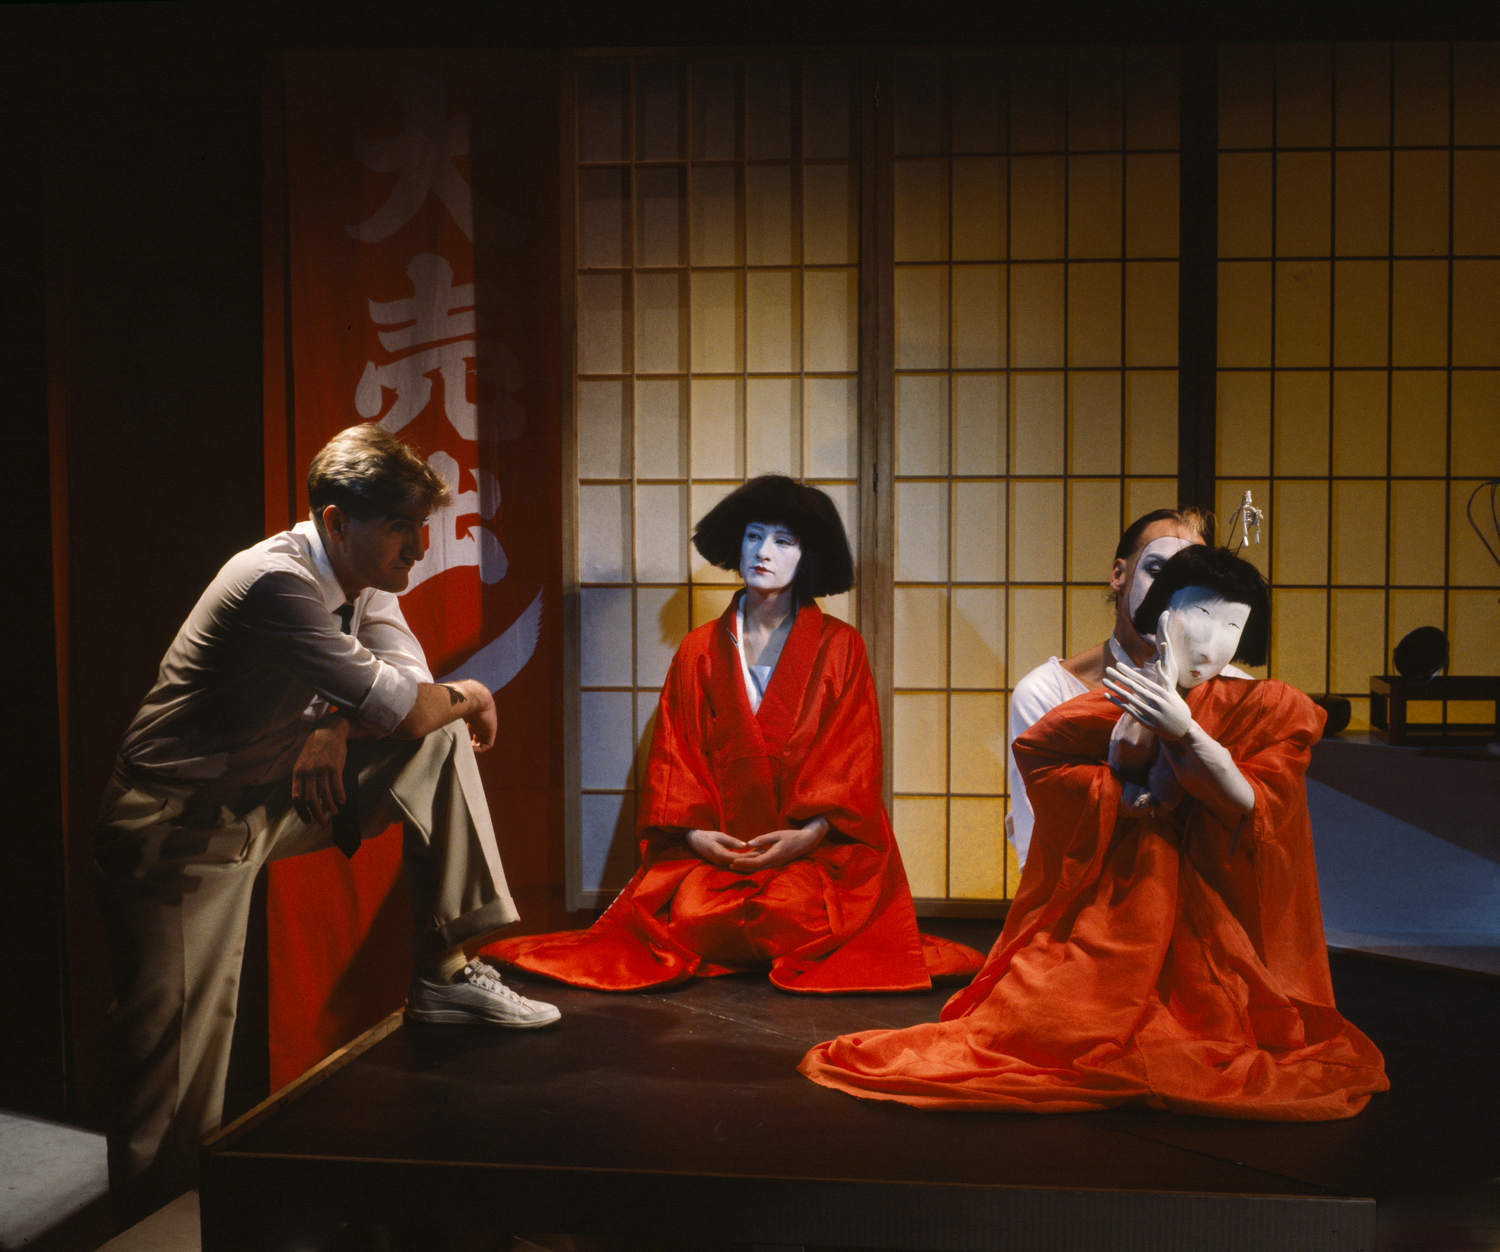 Man, woman and puppeteer with life-size puppet, in Japanese-style room.